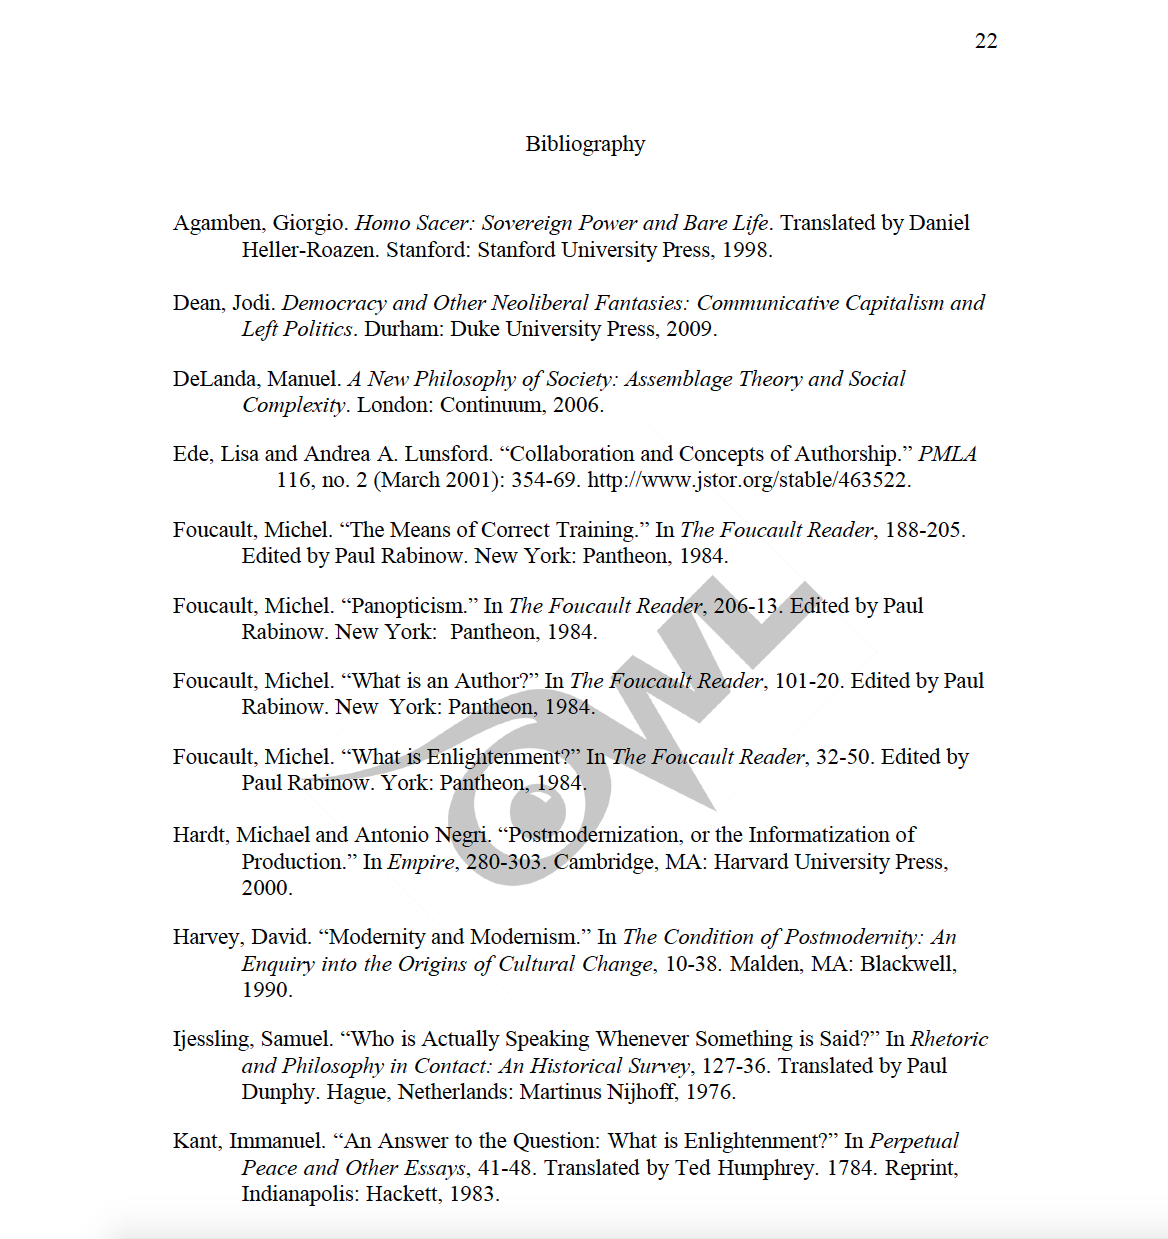 This Image Shows The Bibliography Page Of A CMS Paper